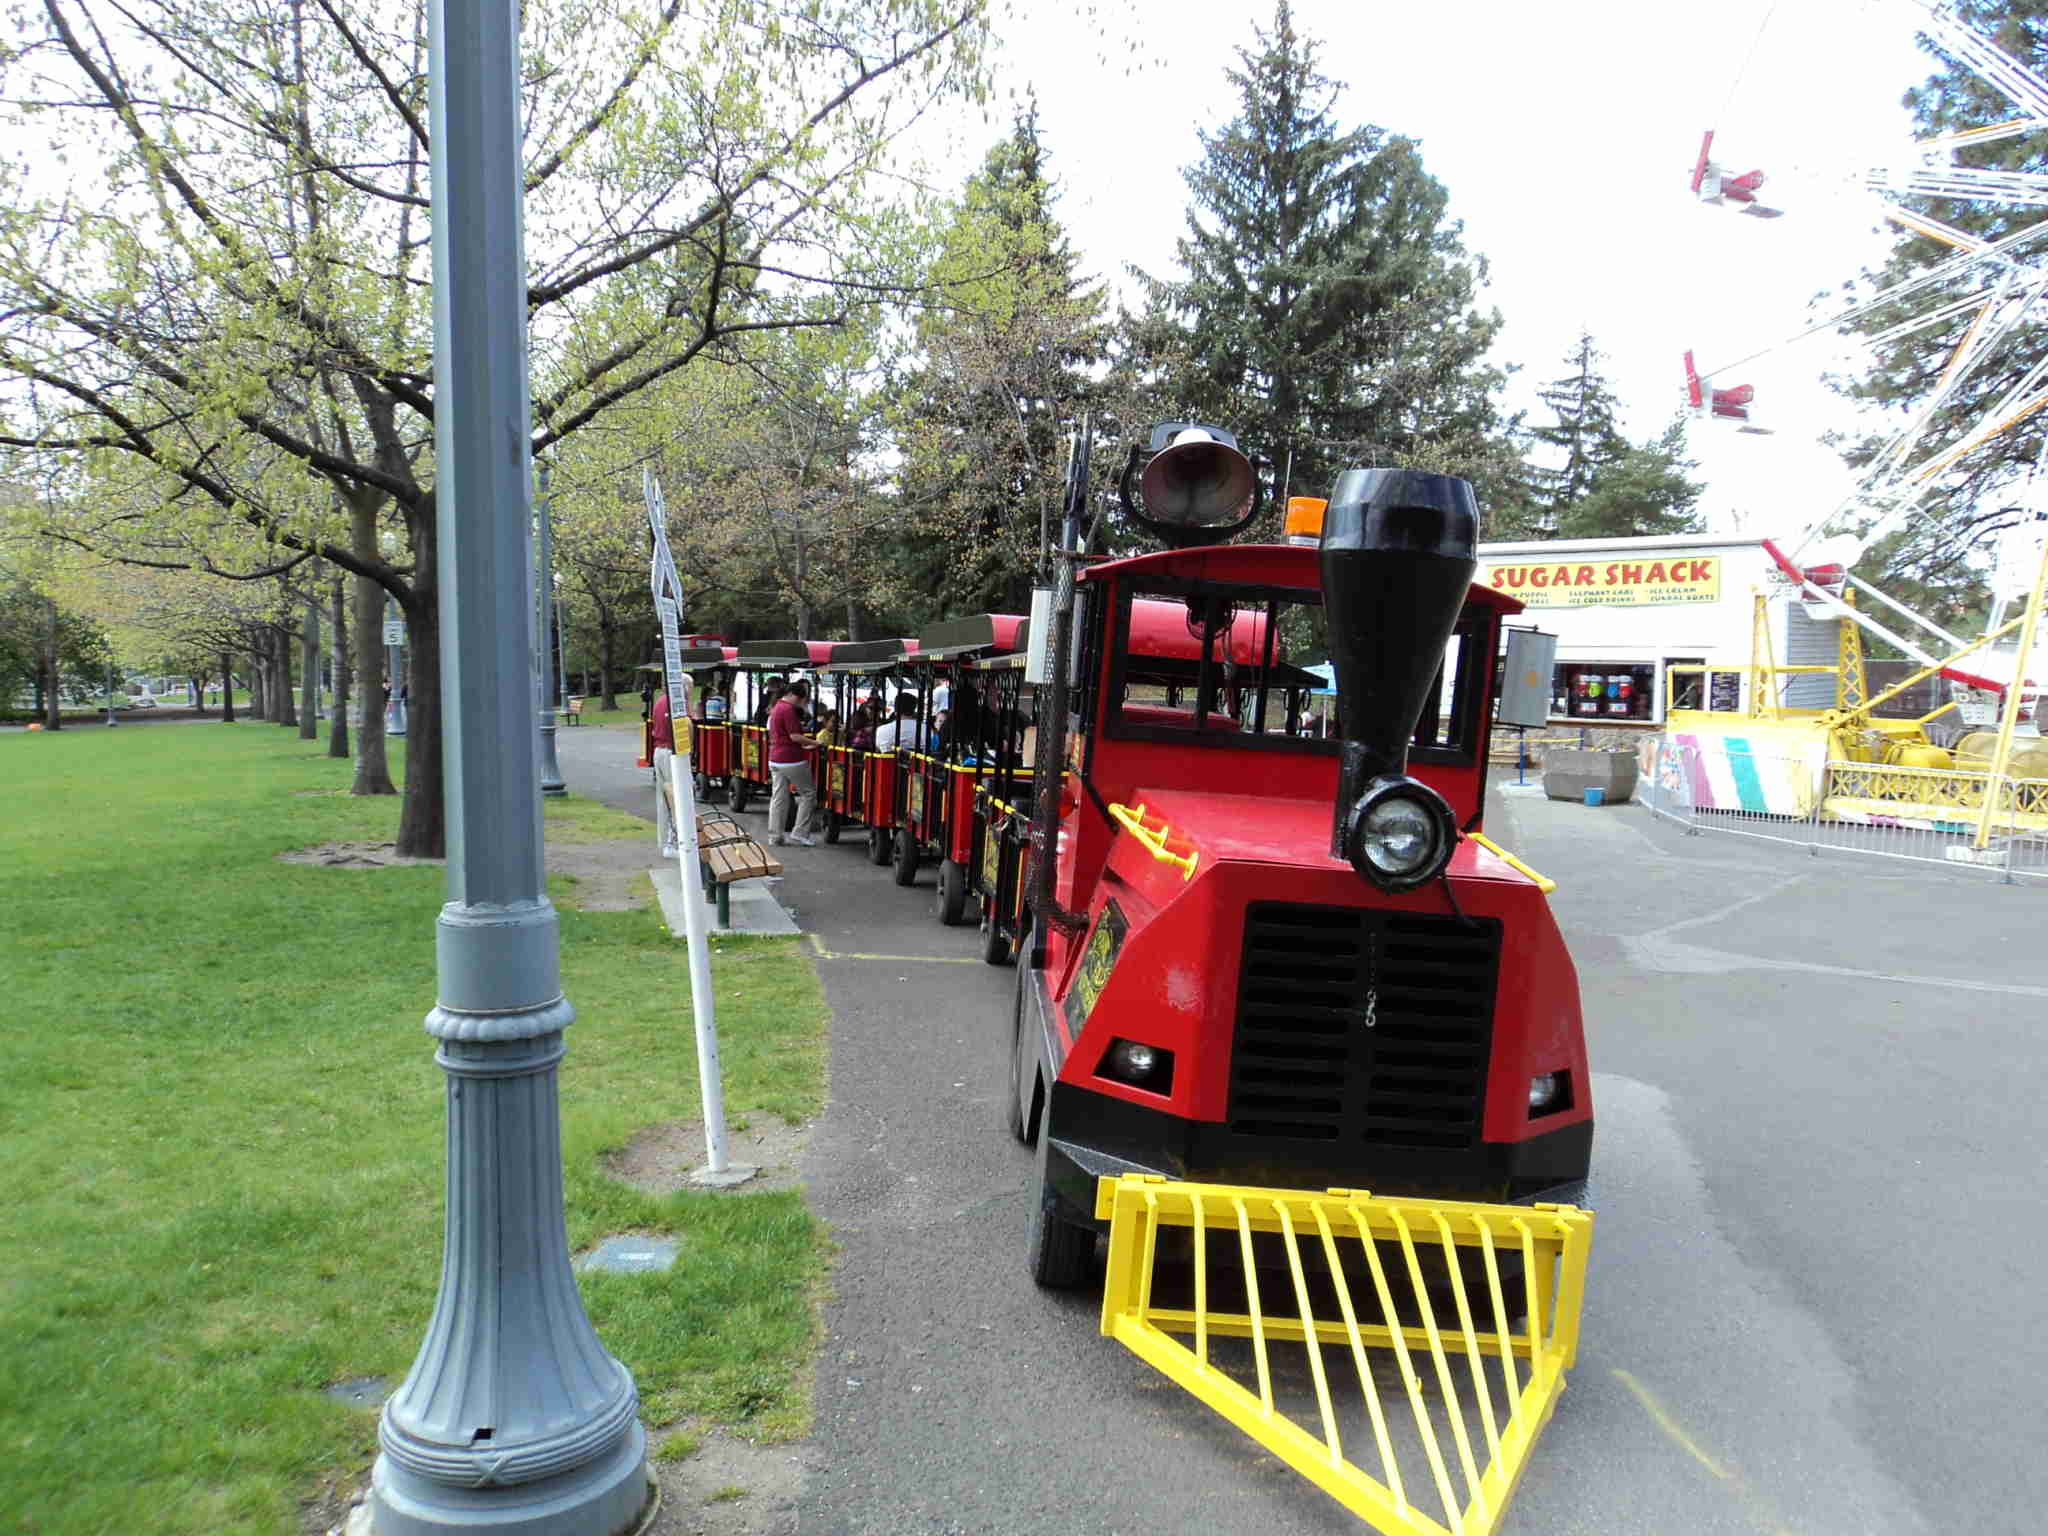 The Tour Train in Riverfront Park